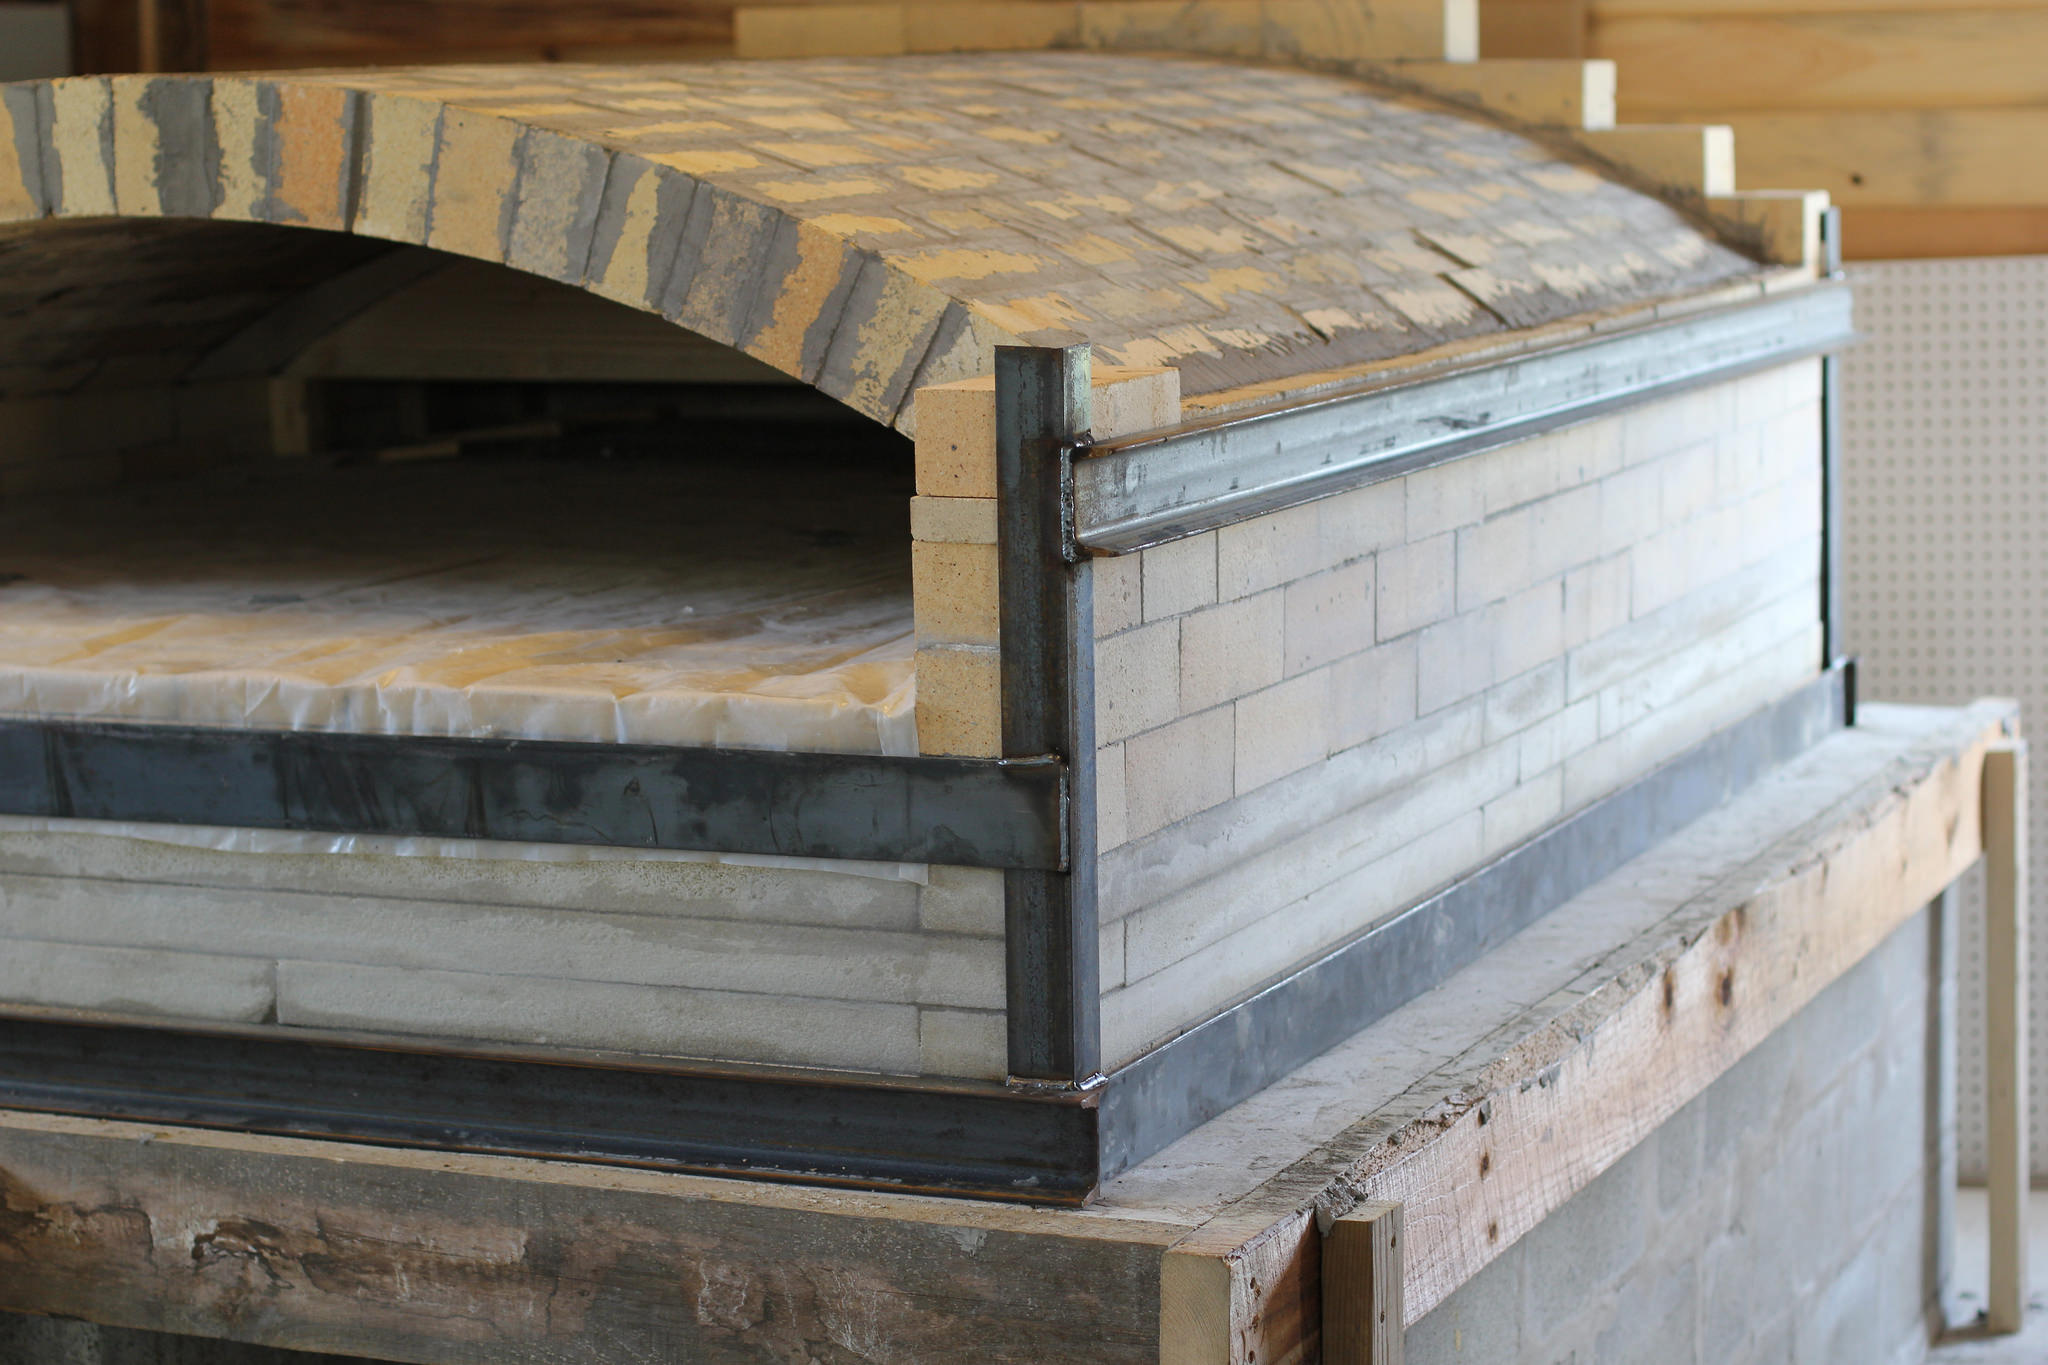 A Wood Fired Bread Oven Without Chimney